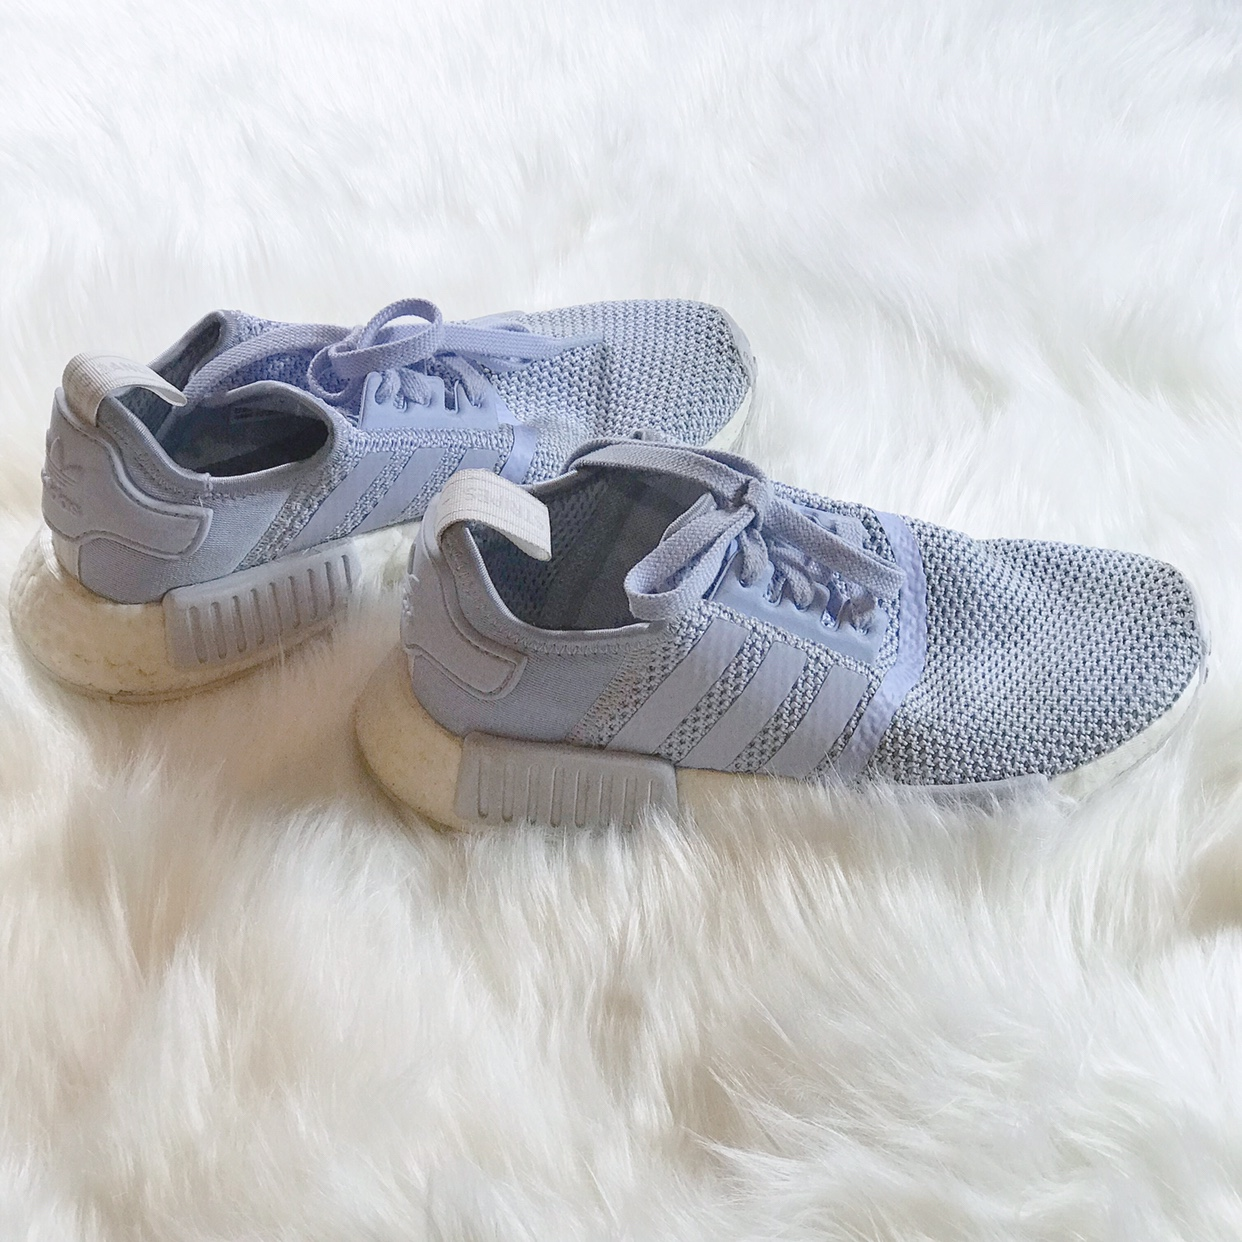 new concept 11aa4 586c6 FREE SHIPPING‼️ Adidas NMD R1 Sneakers in Aero Blue... - Depop